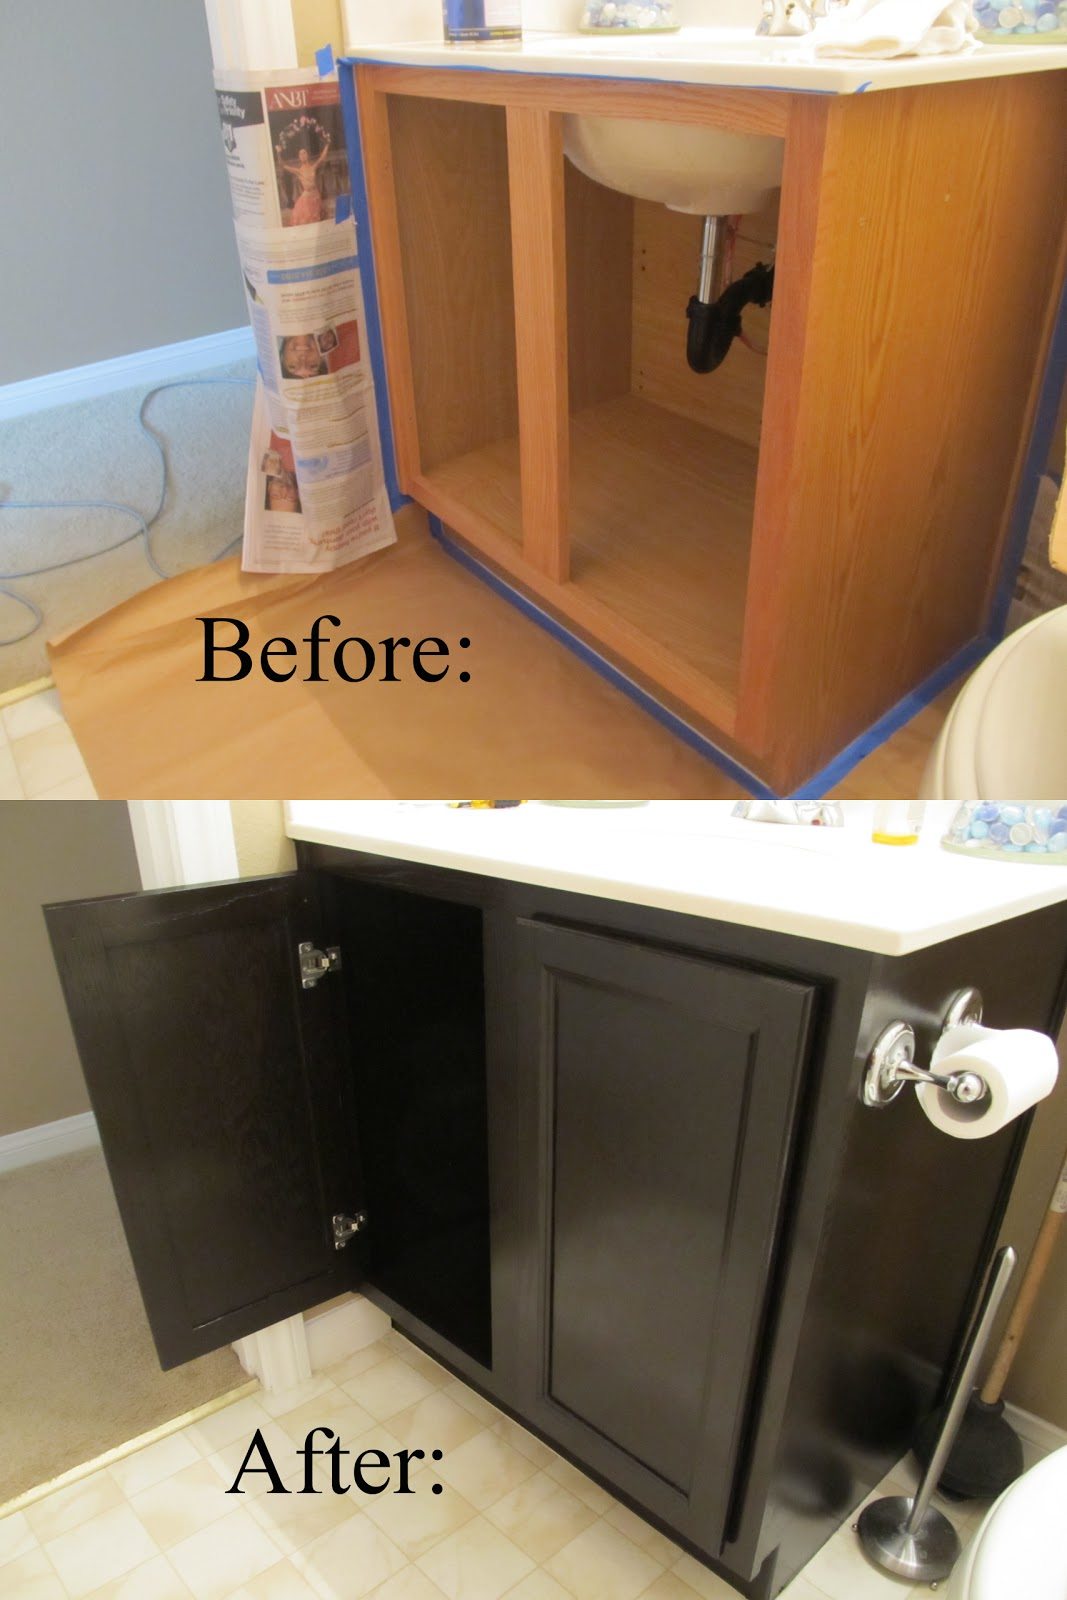 Diy mamas staining the easy way with professional results for Best way to stain kitchen cabinets